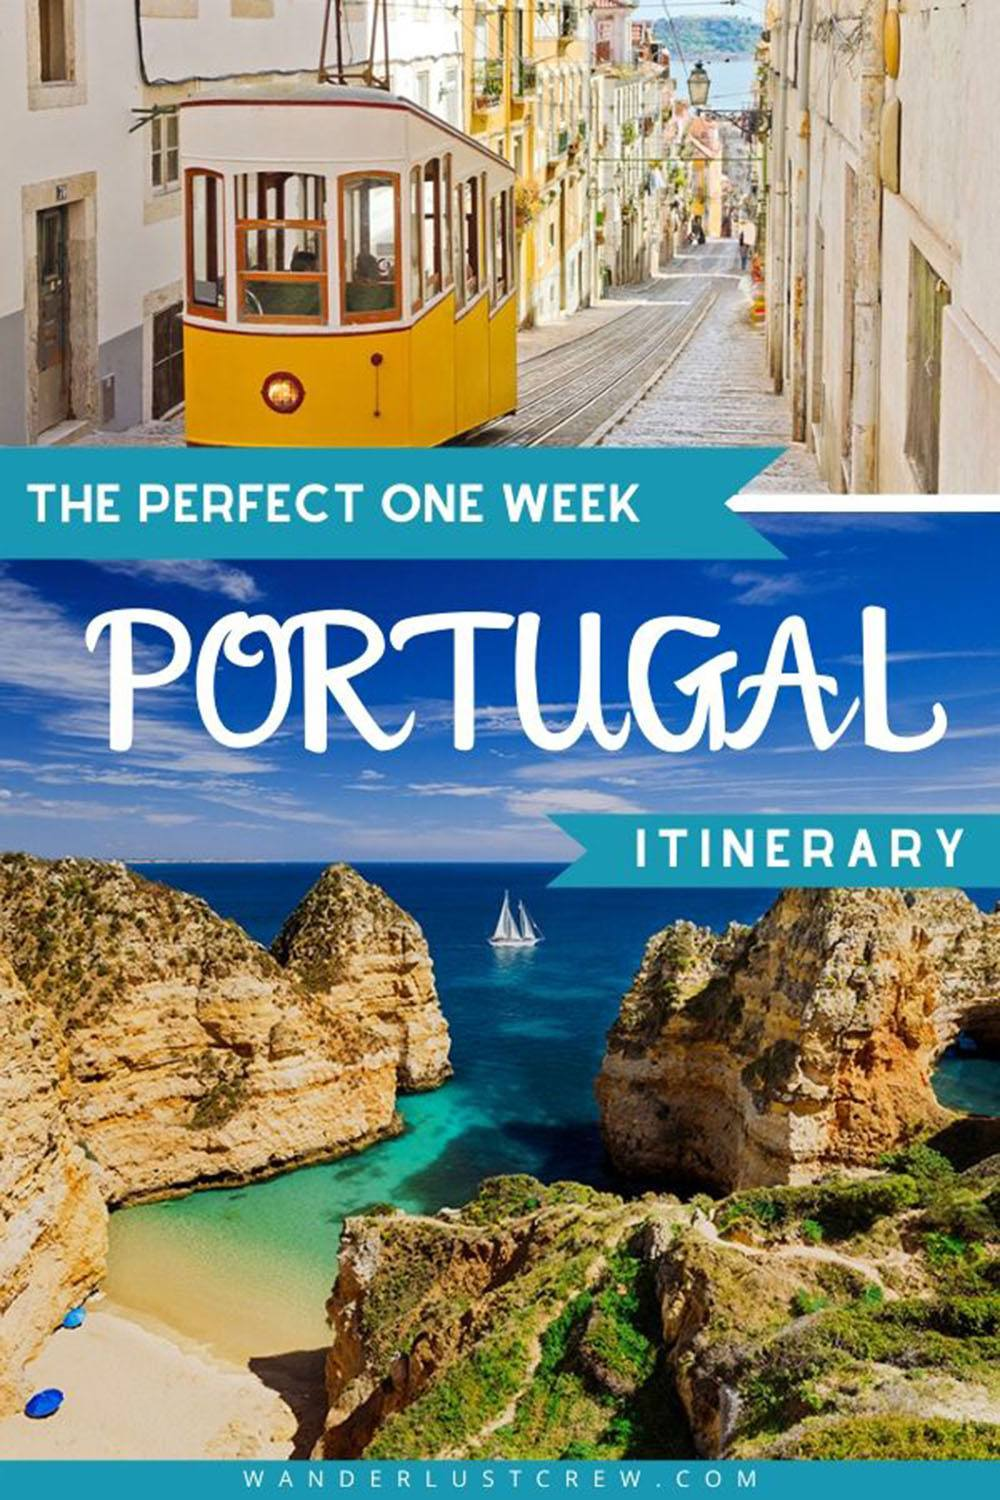 Portugal is a relatively small country compared to other, more popular, European countries. But for such a small area, this amazing country sure packs a big punch! This Portugal itinerary will help you navigate with ease and find the best things to do in Portugal.